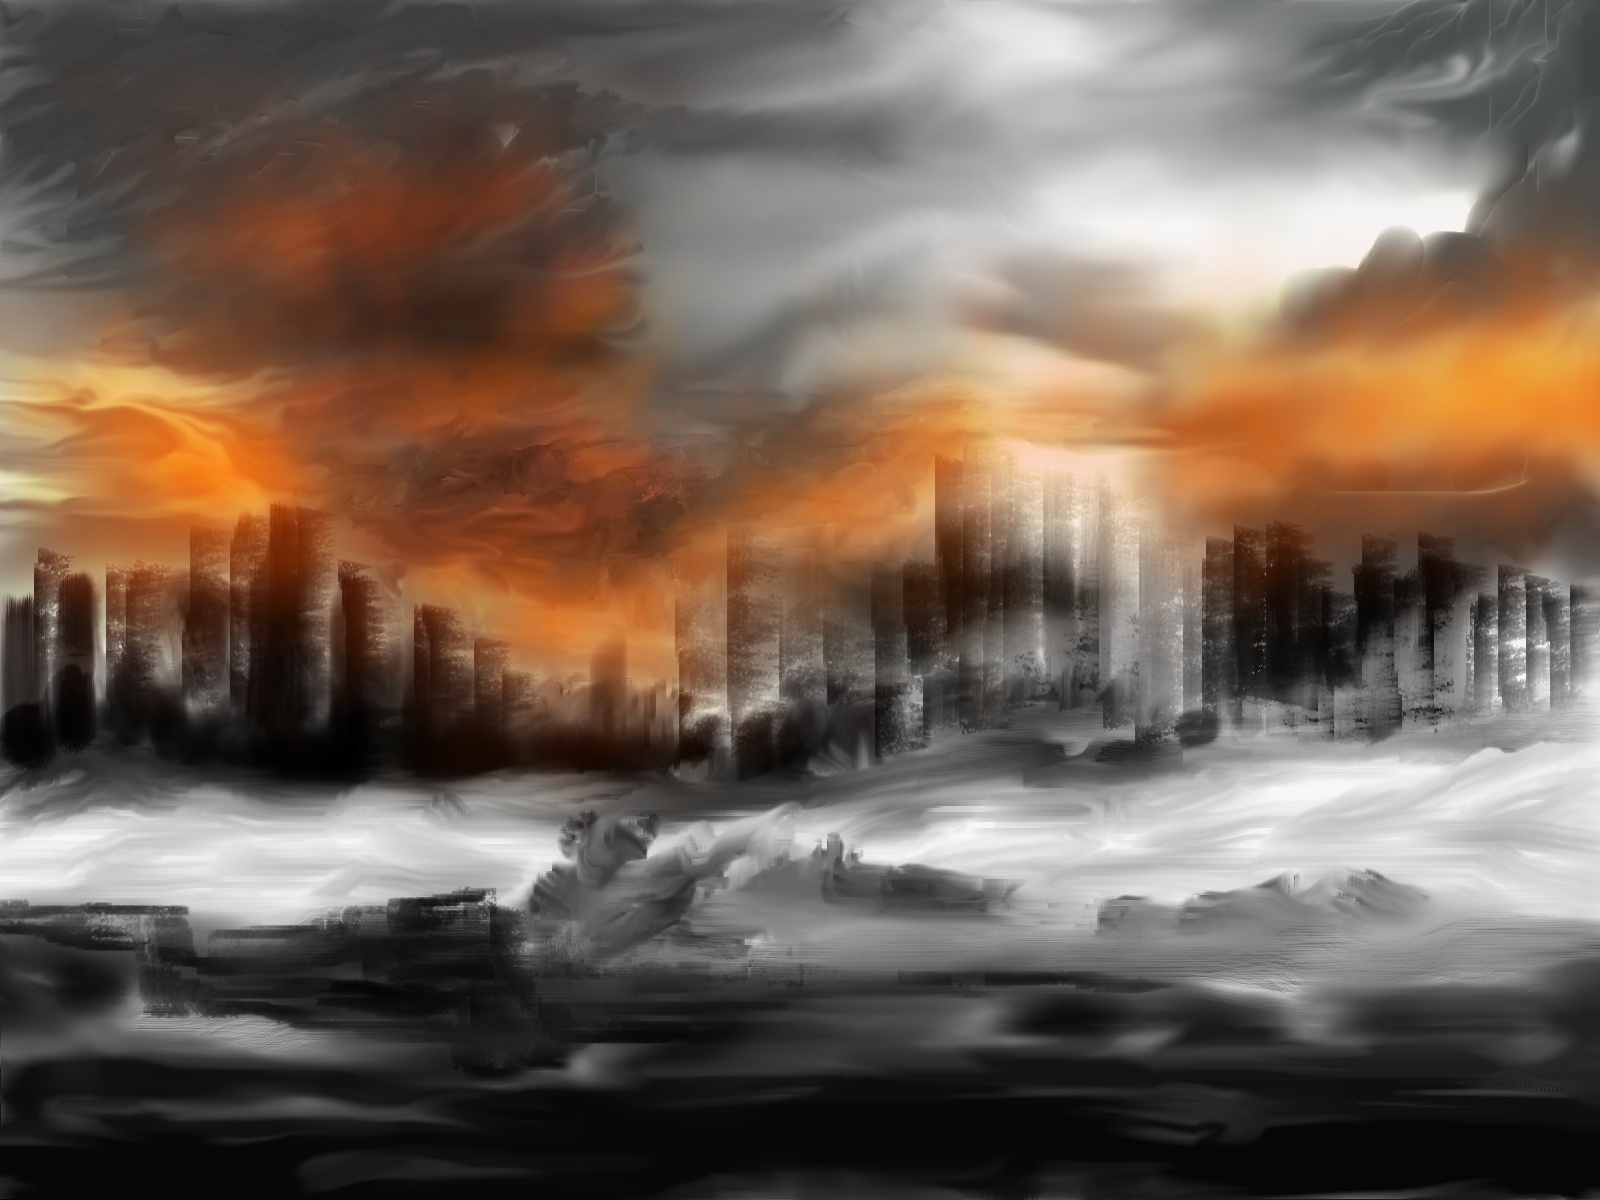 Armageddon Wallpaper and Background | 1600x1200 | ID:303077 - photo#24